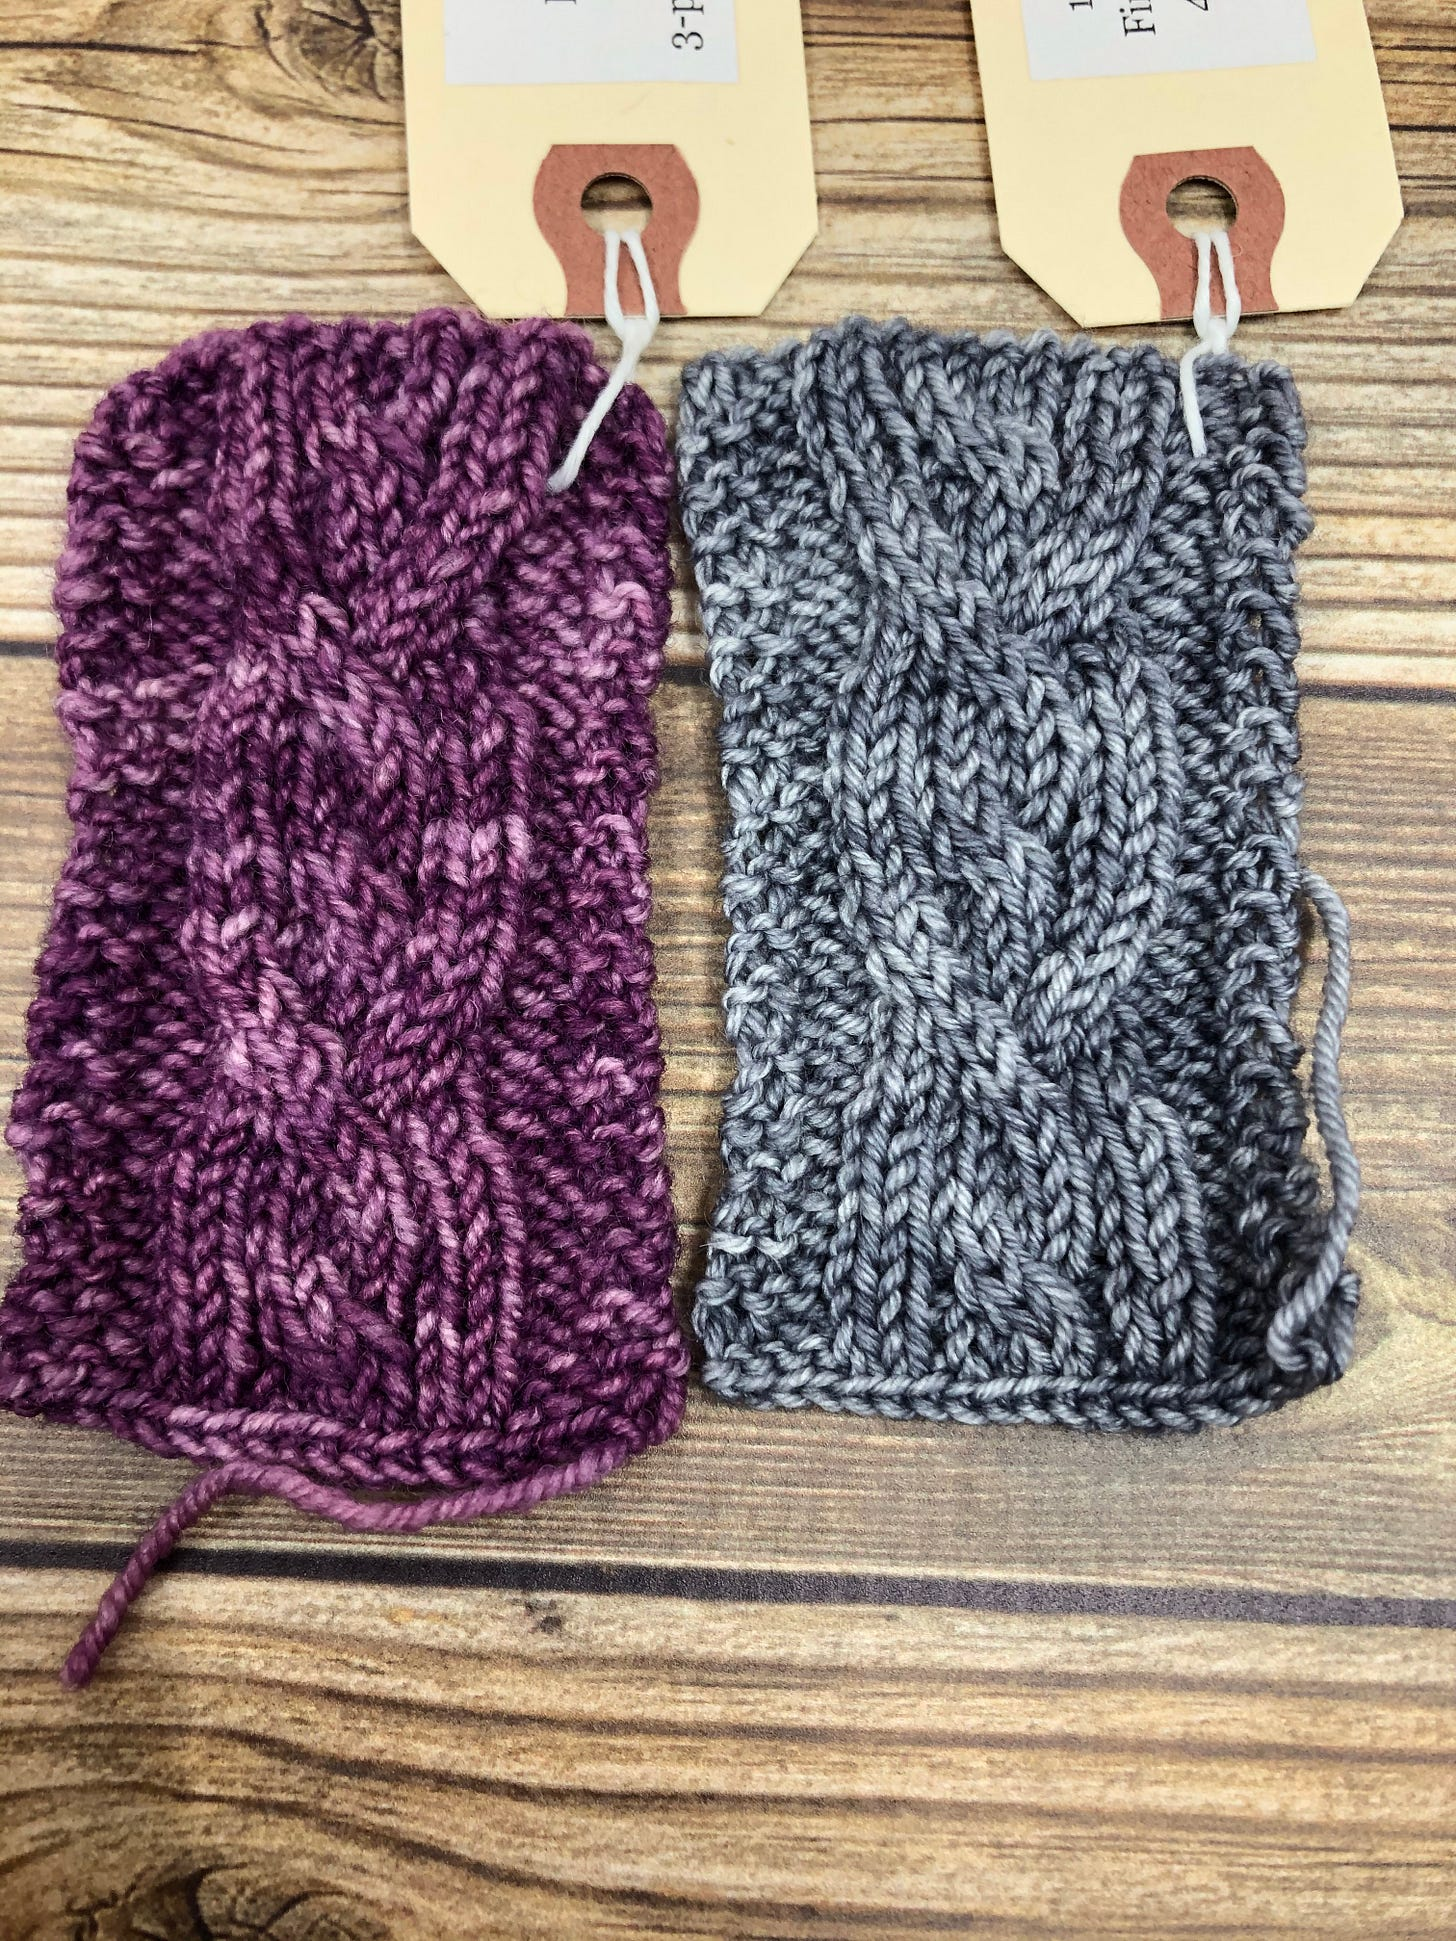 Cable swatches